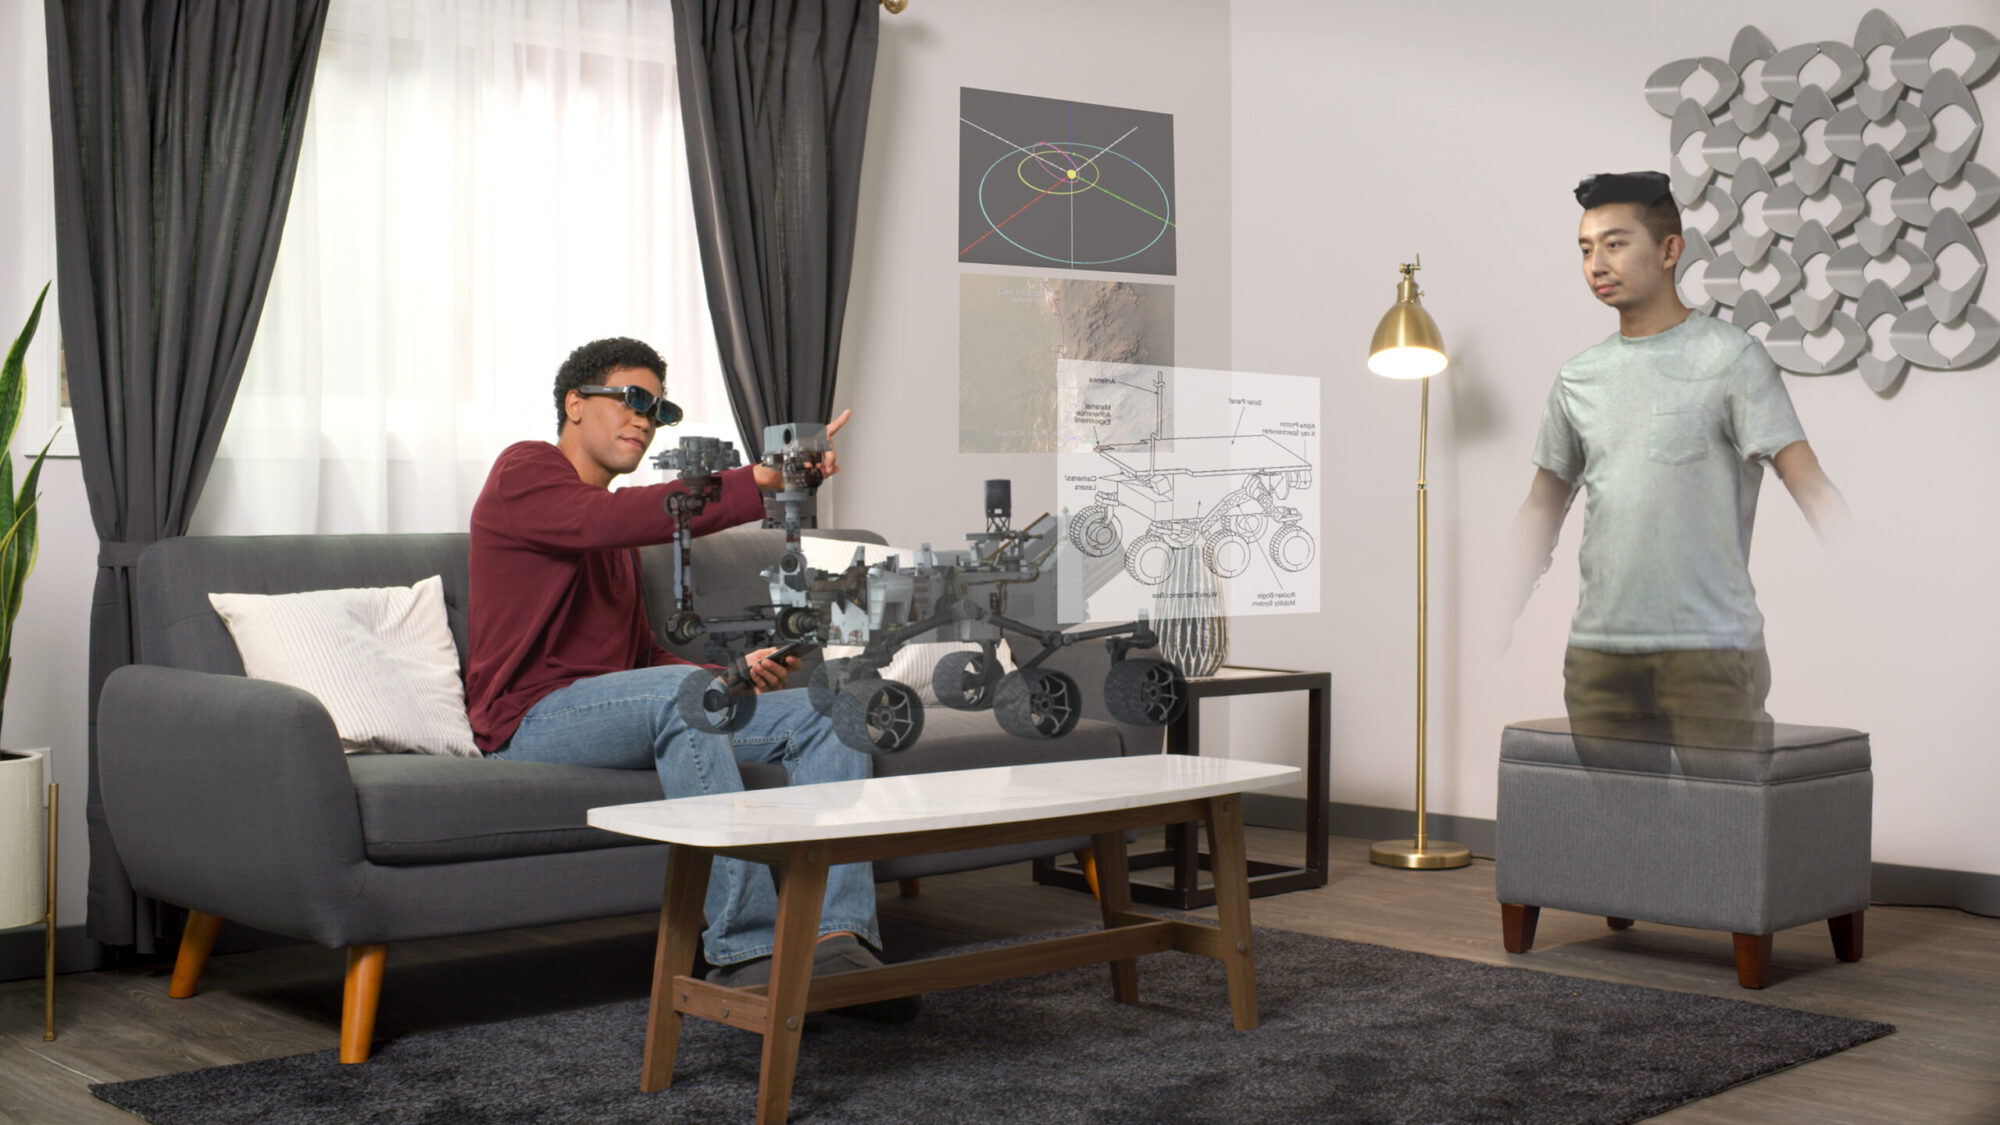 Article Thumbnail - Qualcomm's Latest AR Glasses Allows You To Pin Virtual Screens To Your Wall